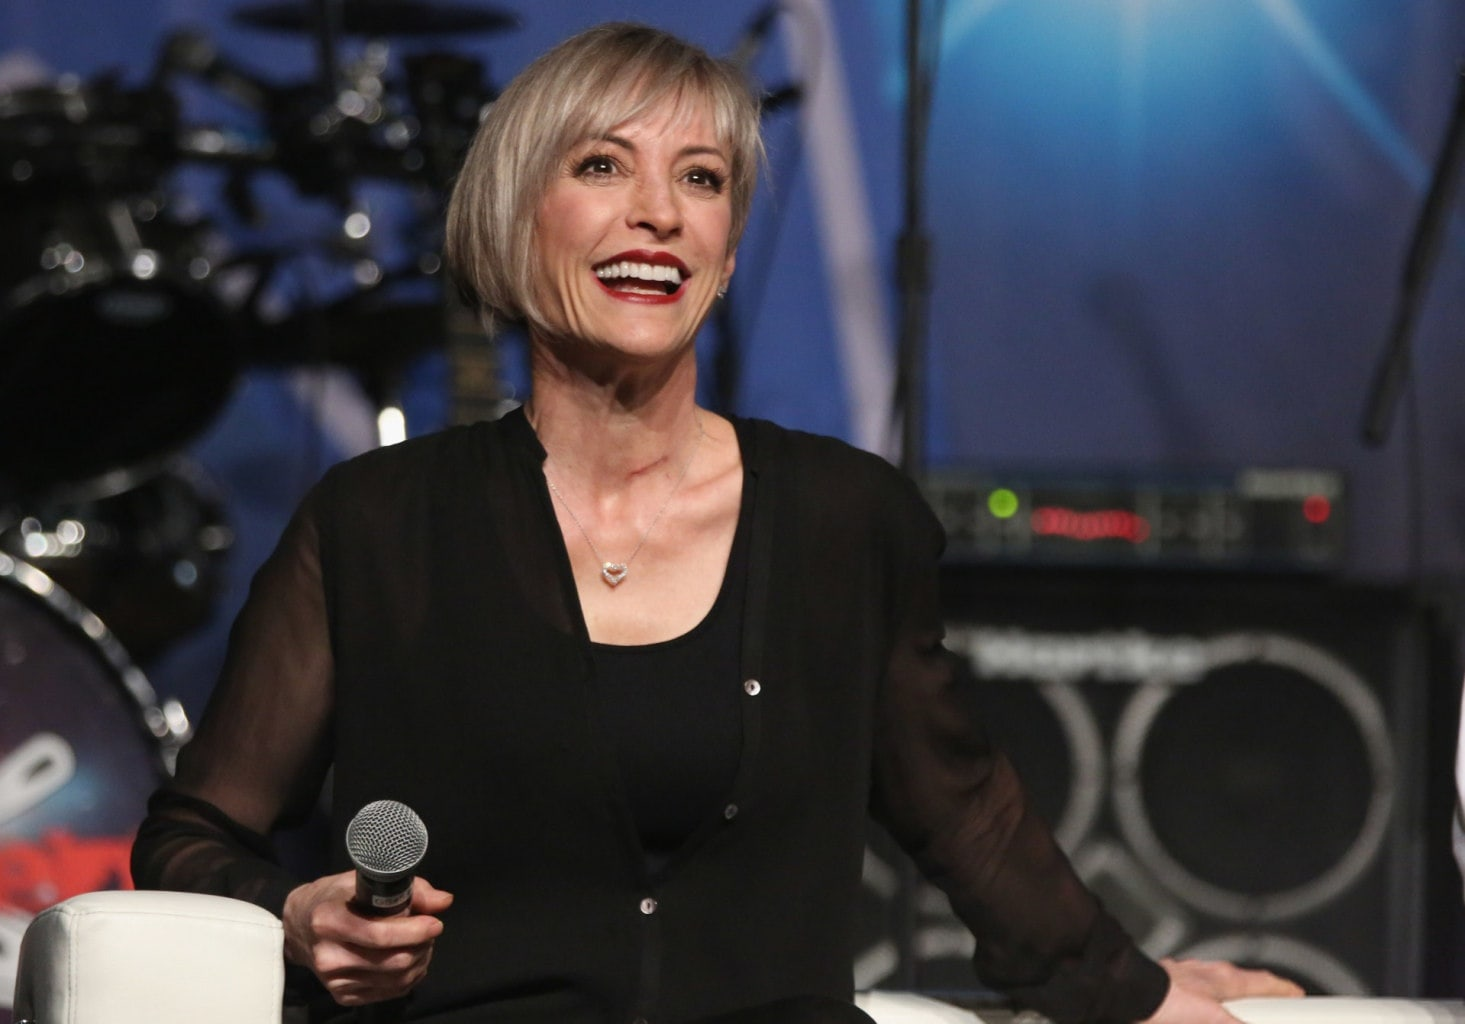 Nana Visitor Full hd wallpapers